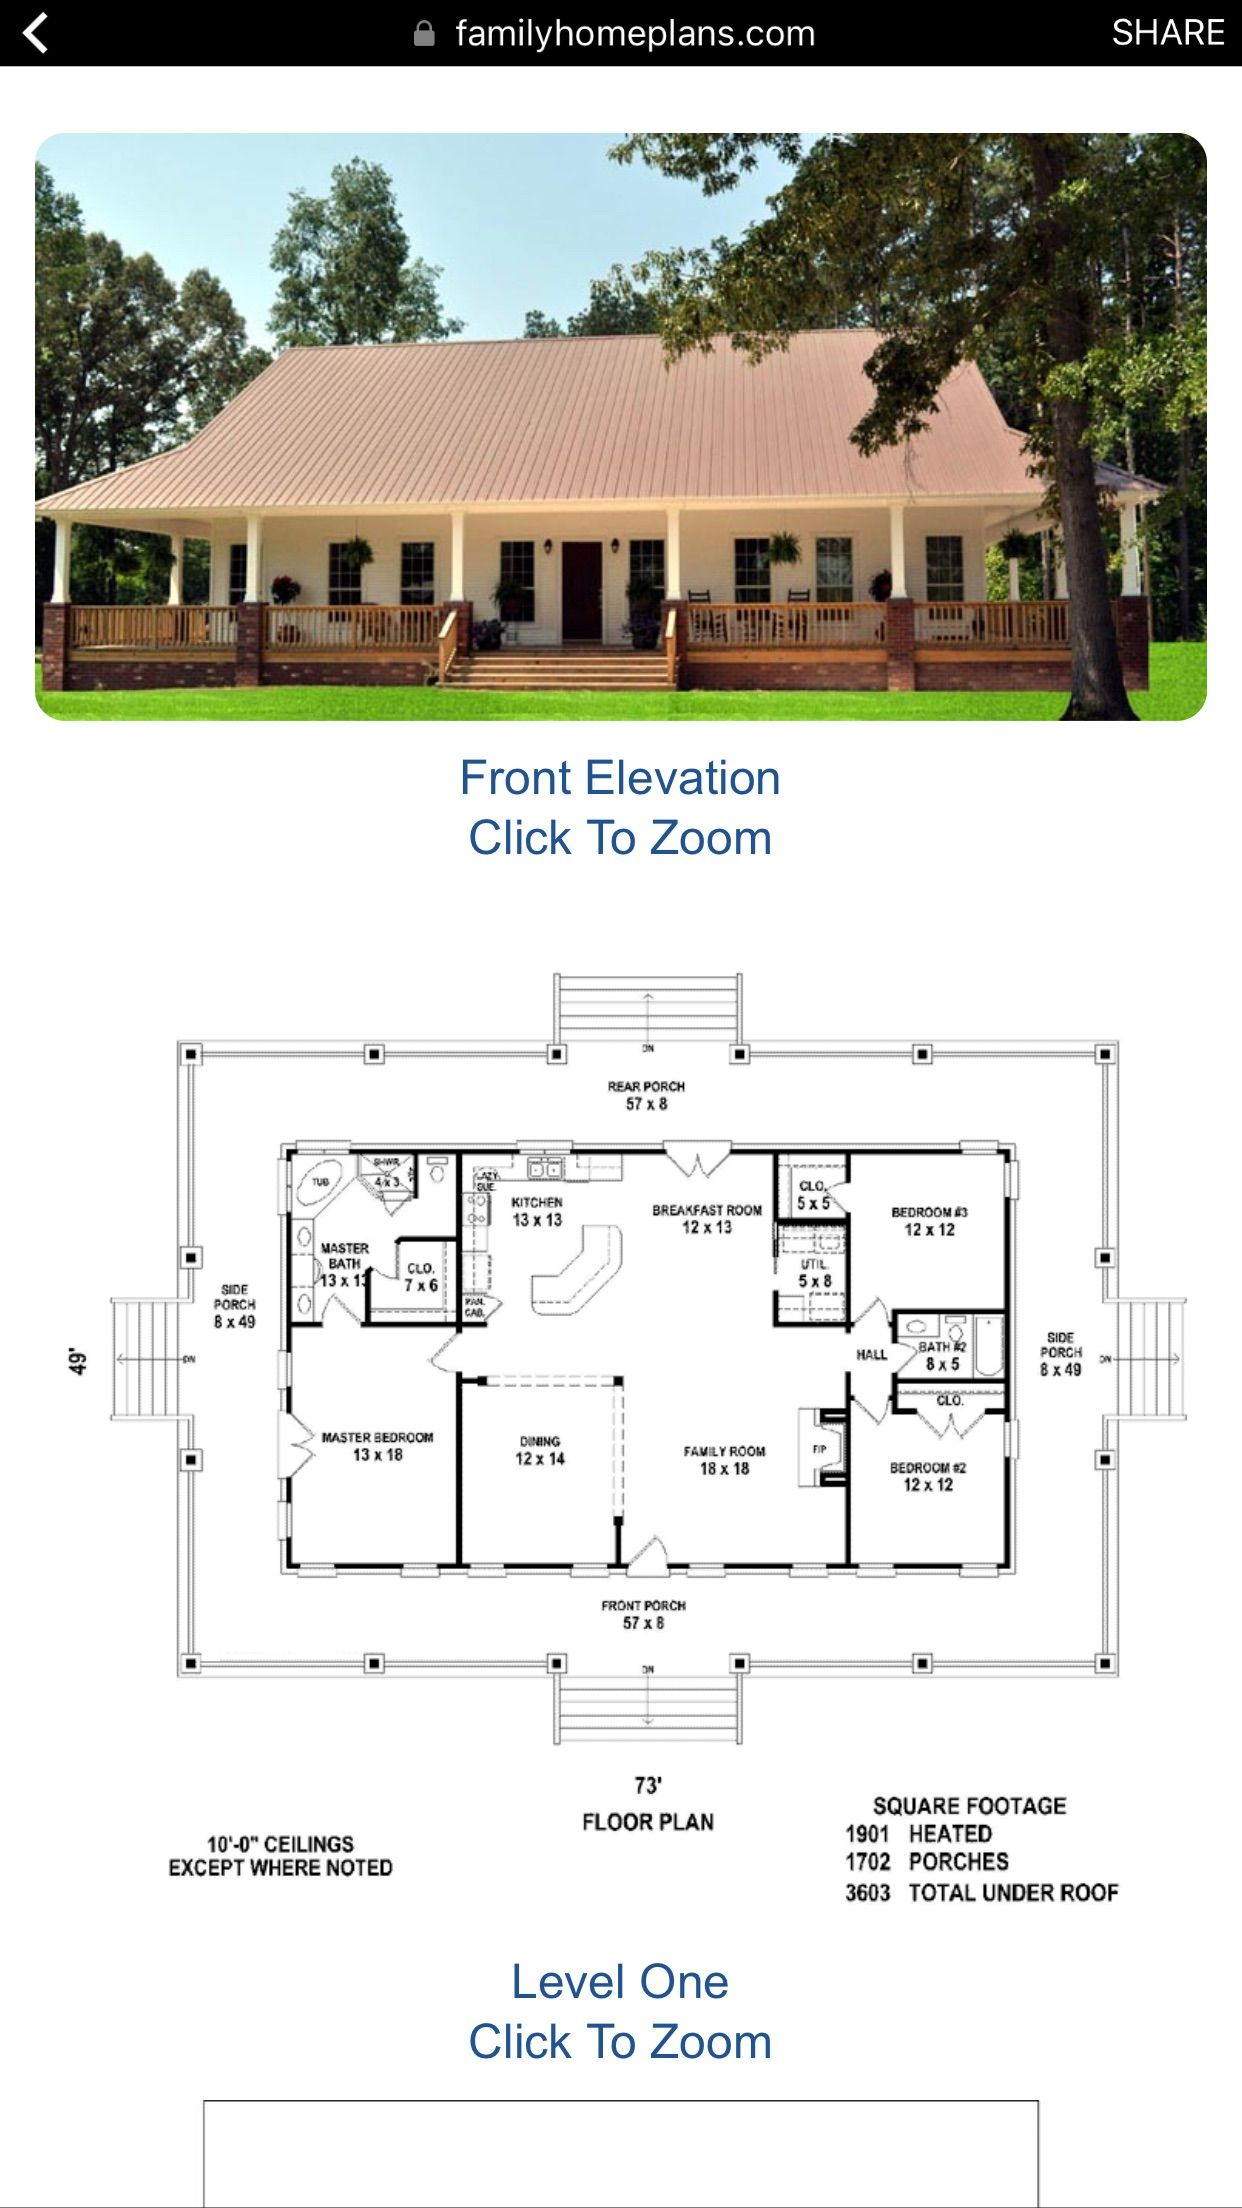 Pin By Terri Murphy On House New House Plans House Layouts Dream House Plans